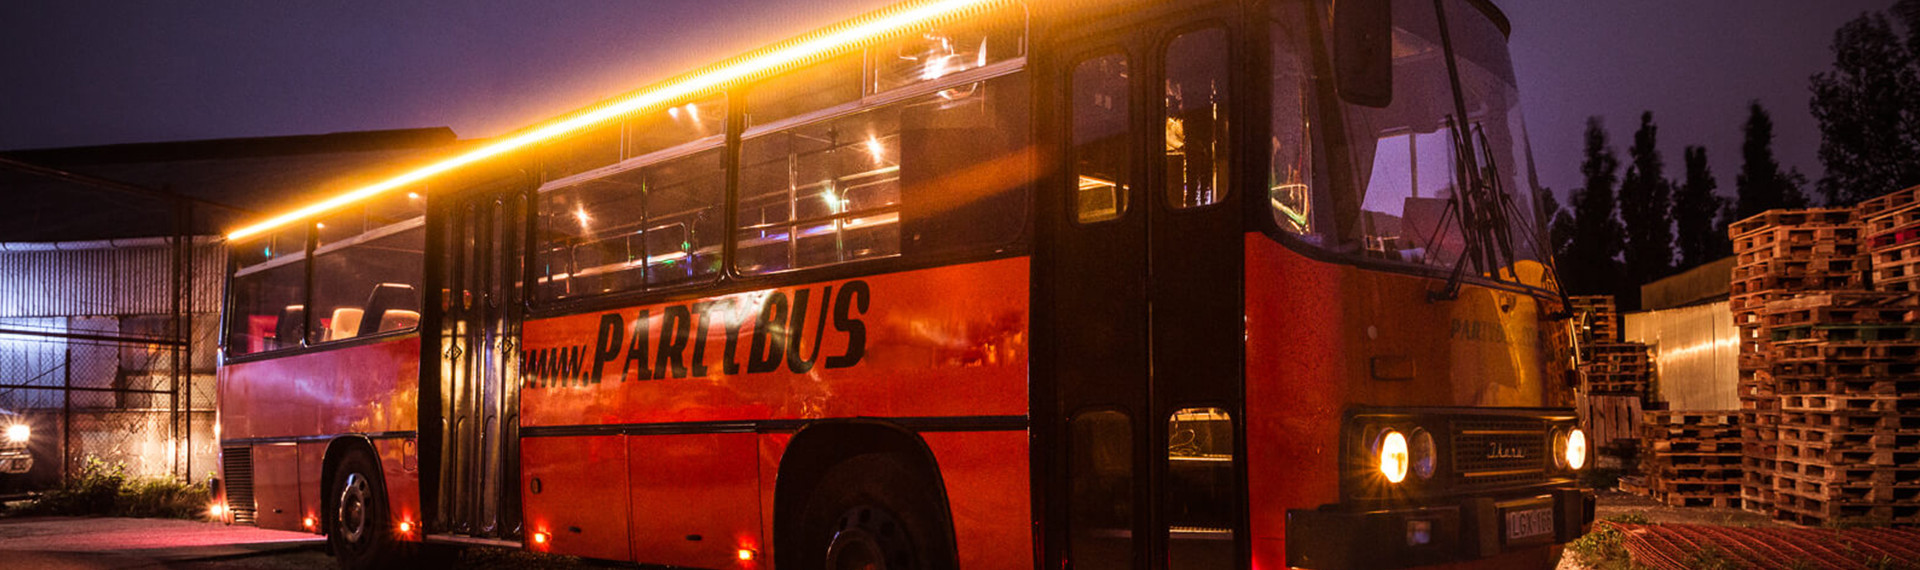 Party Bus in Amsterdam | Pissup